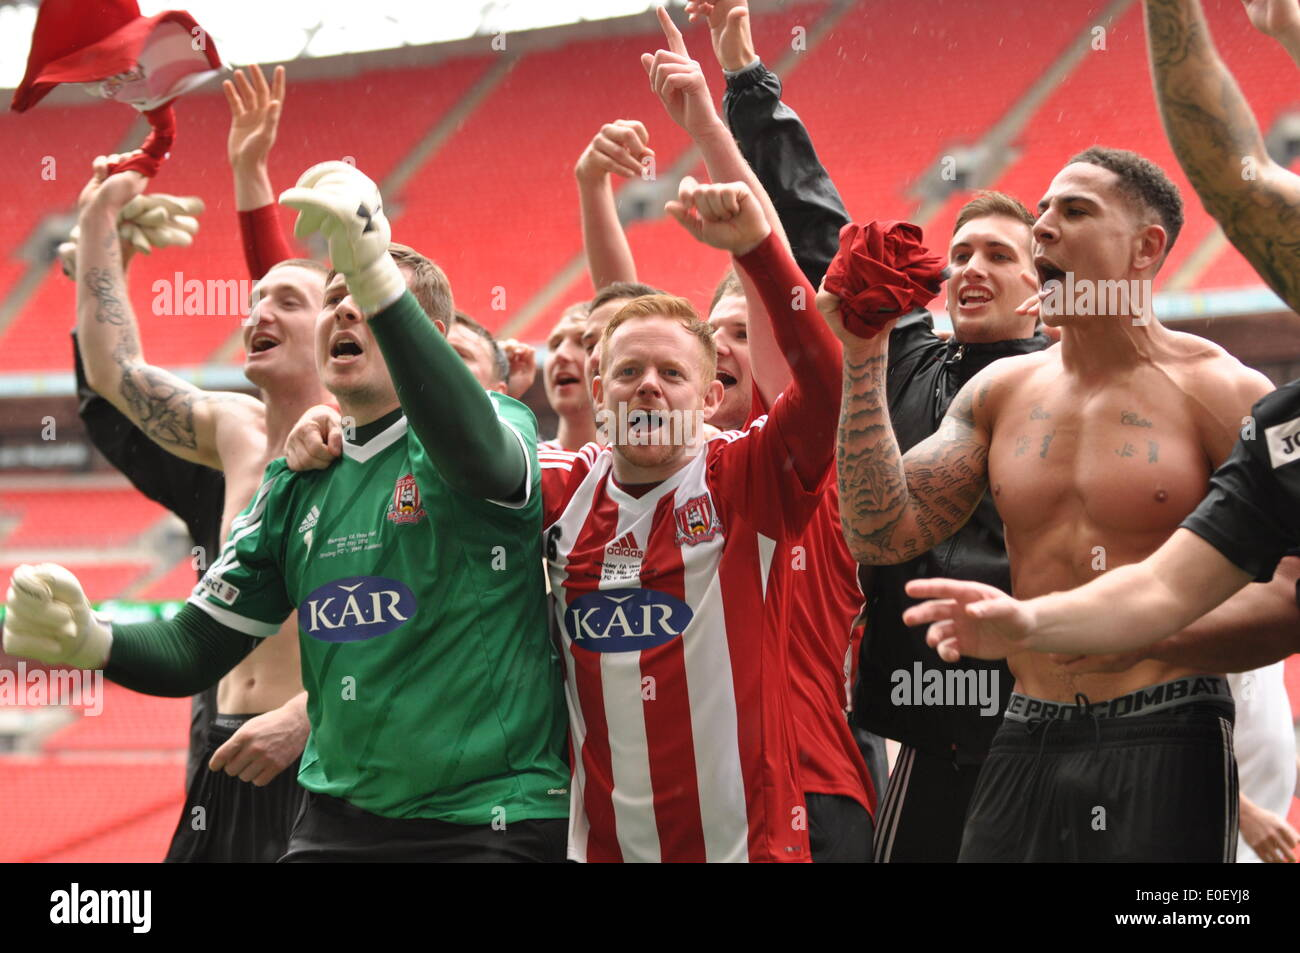 London uk 10th may 2014 sholing fc players and fans celebrate sholing fc players and fans celebrate winning the 2014 fa vase at wembley london uk sholing fc are based in hampshire and are this years reviewsmspy